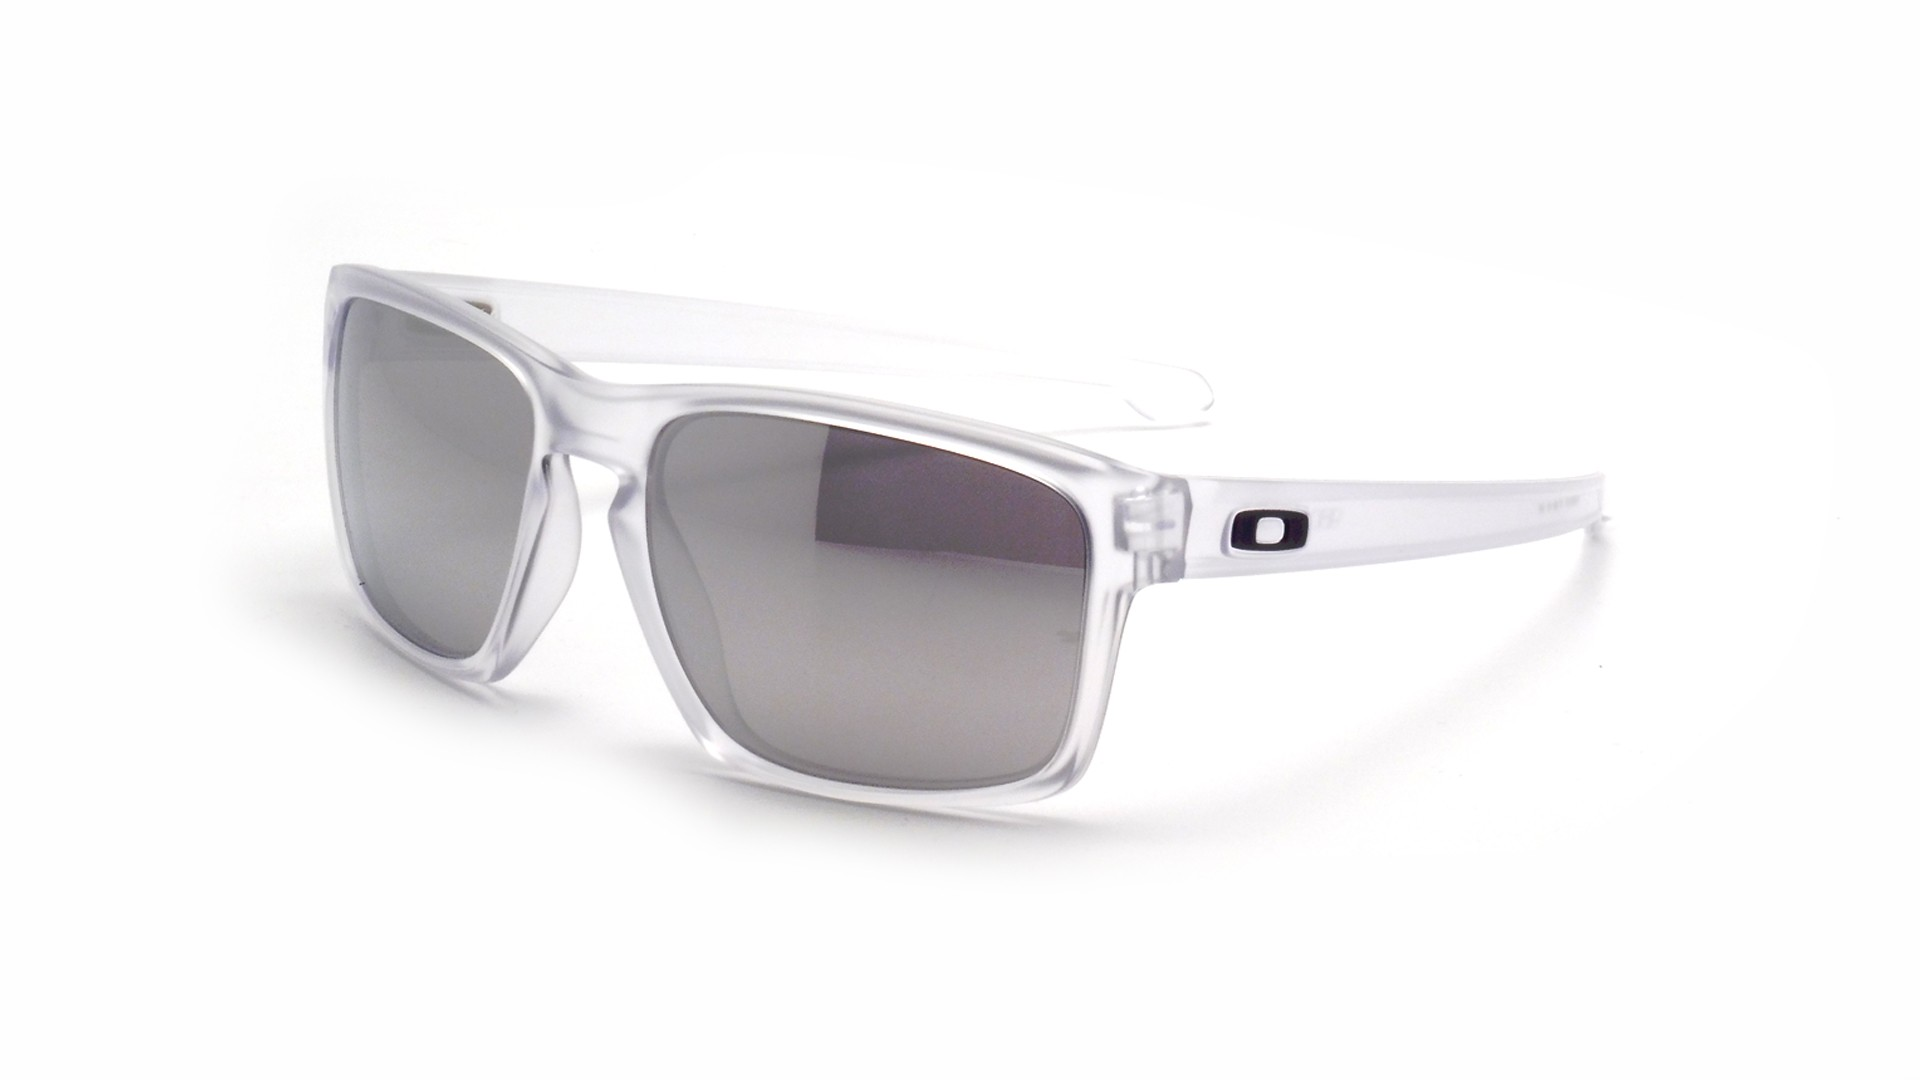 oakley clear sunglasses bncy  Oakley Sliver Urban Jungle Clear OO9262 23 57-18 87,42